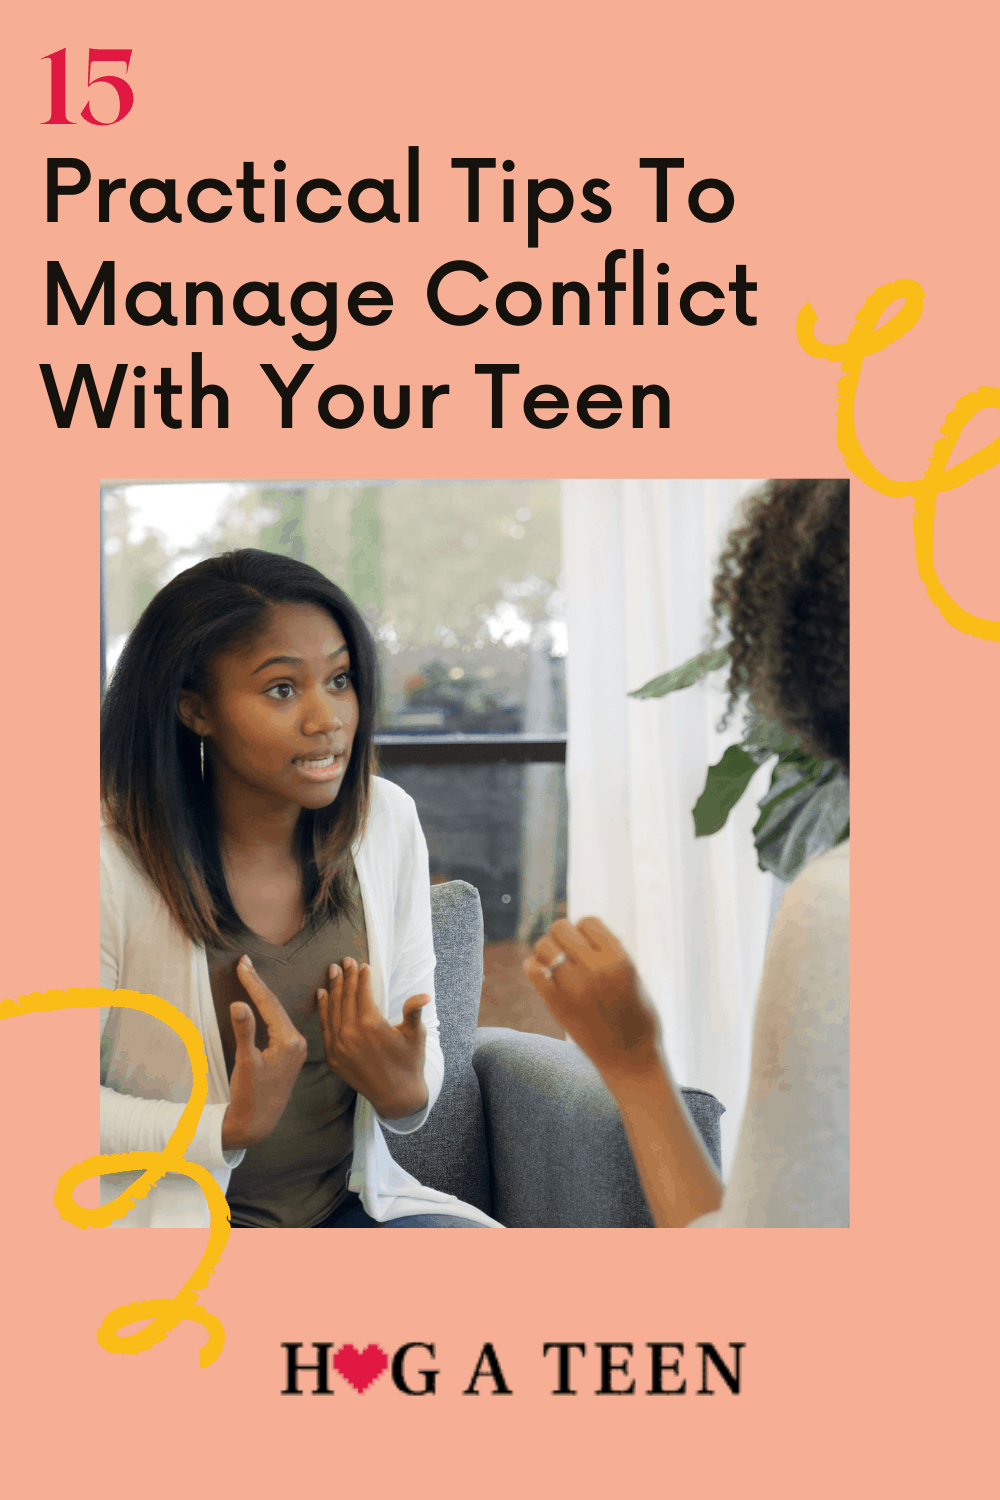 15 Practical Tips To Manage Conflict